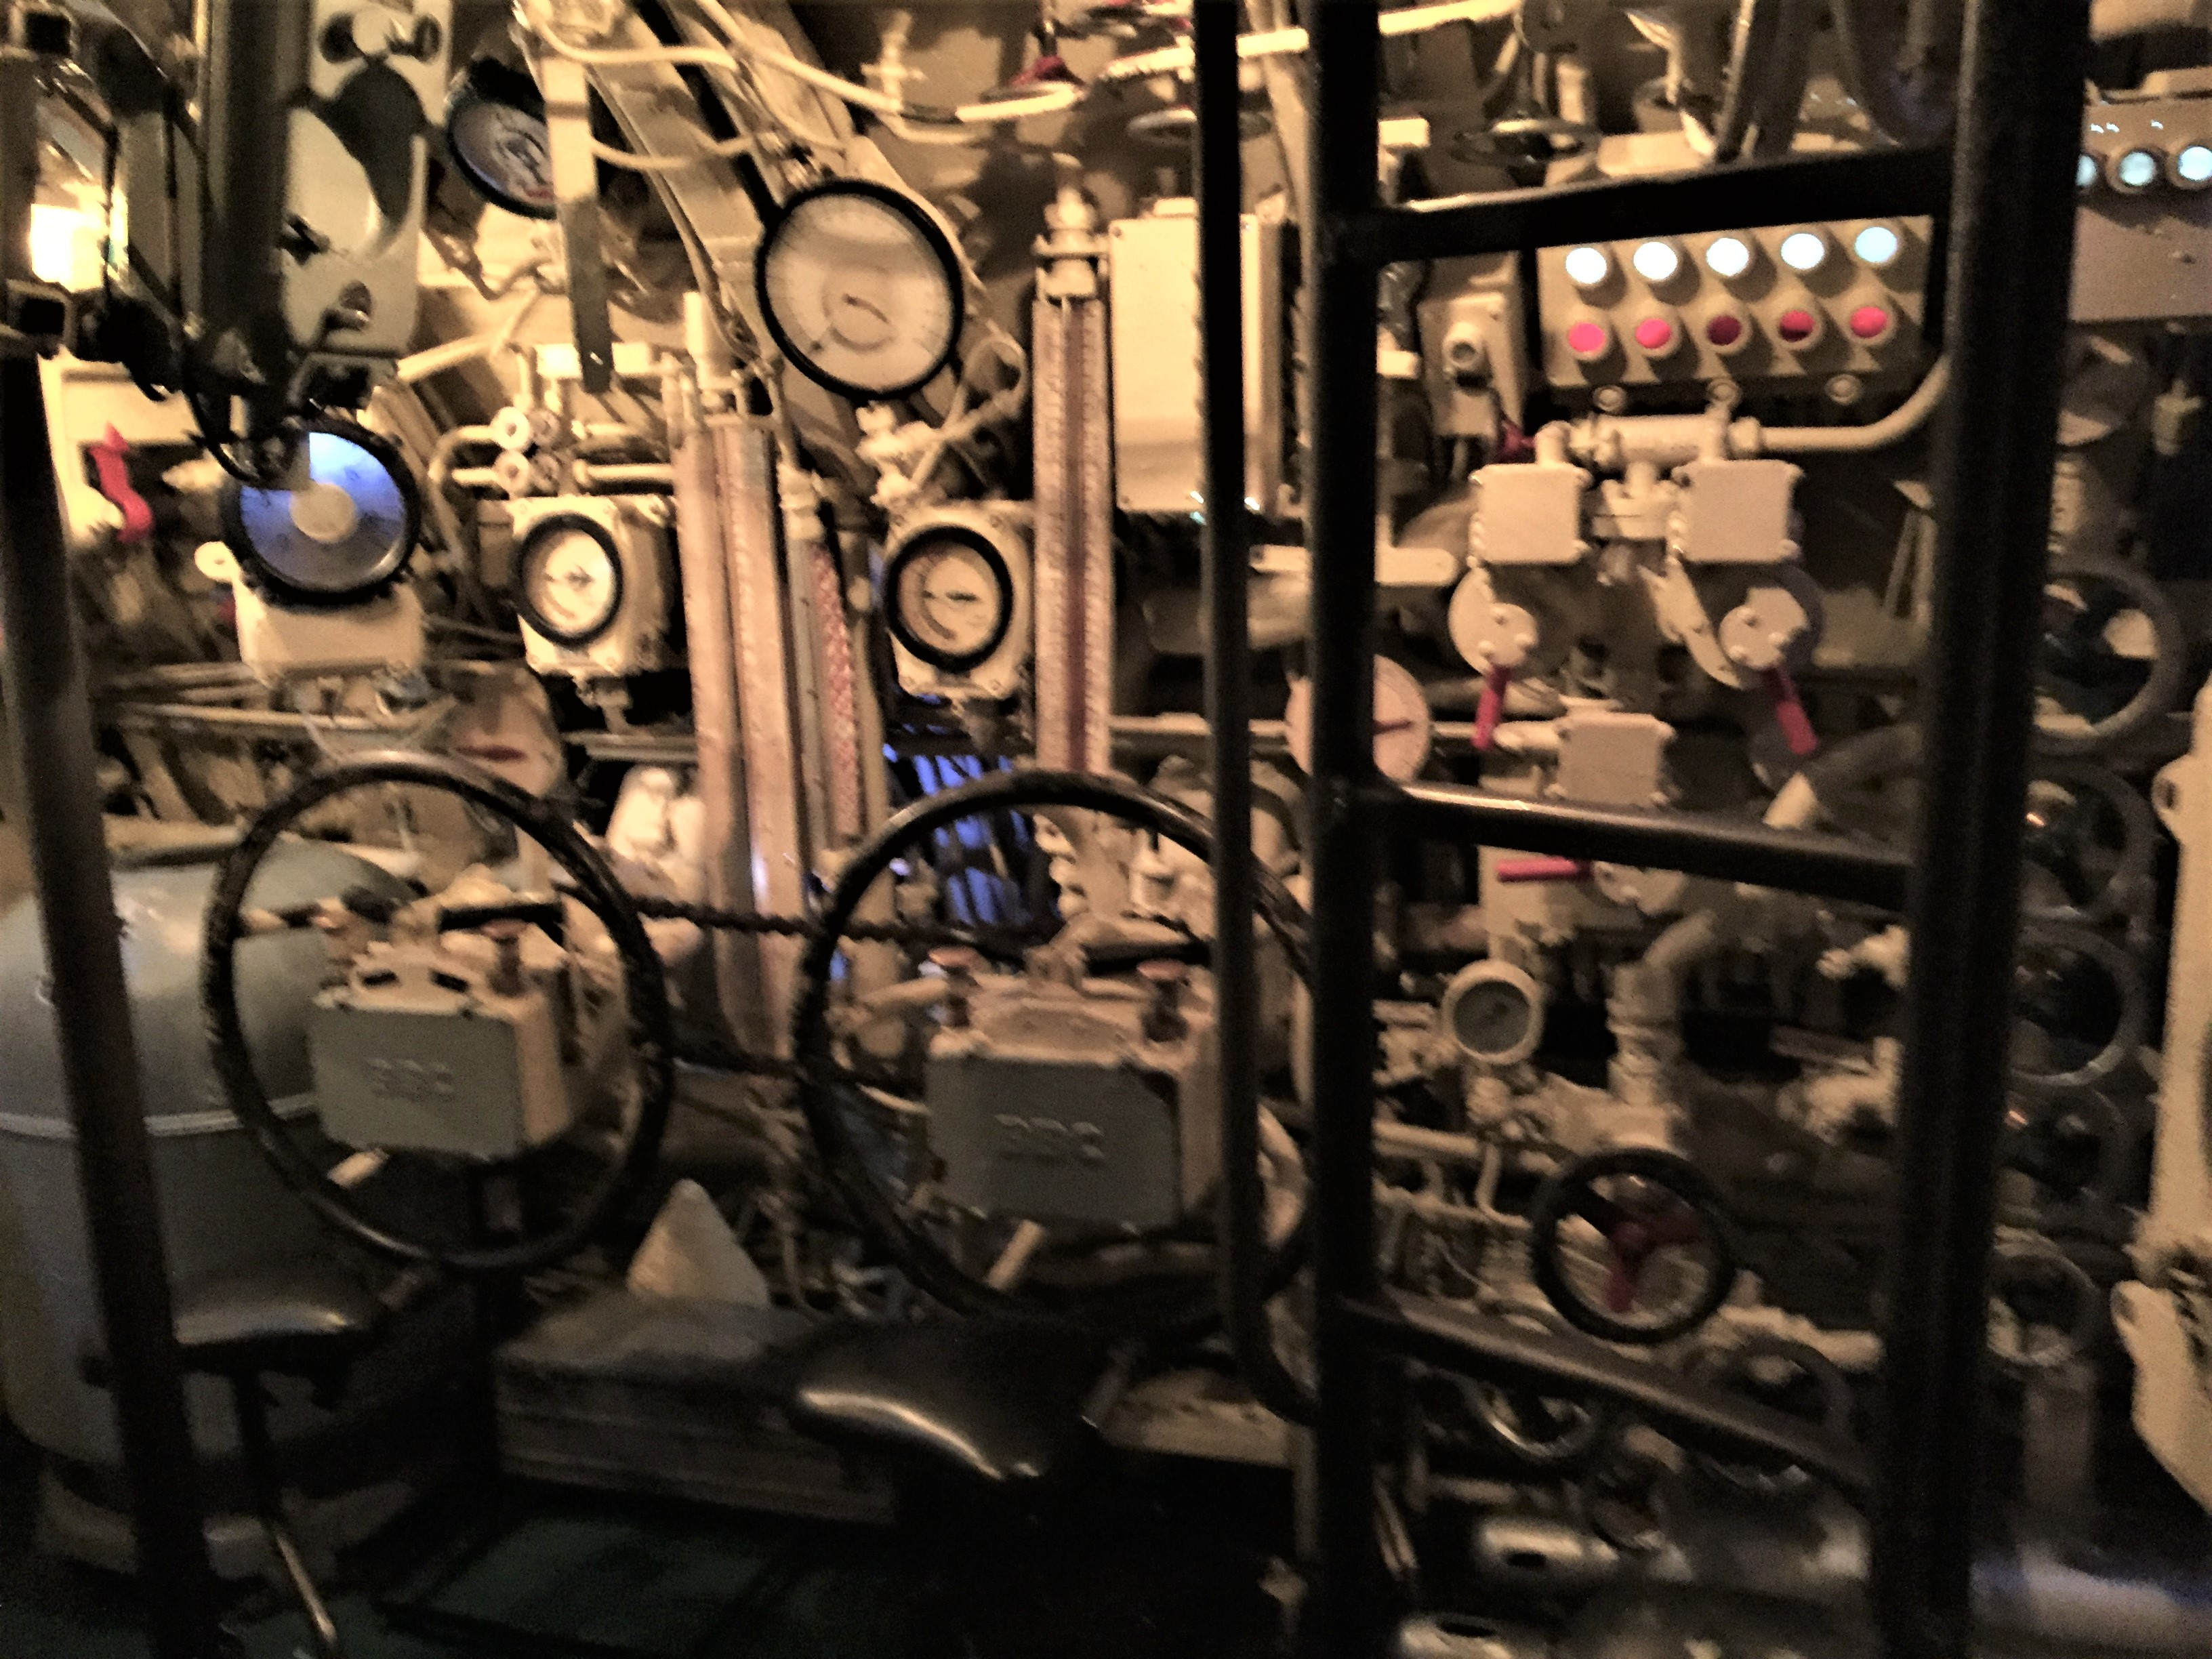 Control room in U-505, Chicago Museum of Science and Industry (Photo: Sarah Sundin, September 2016).